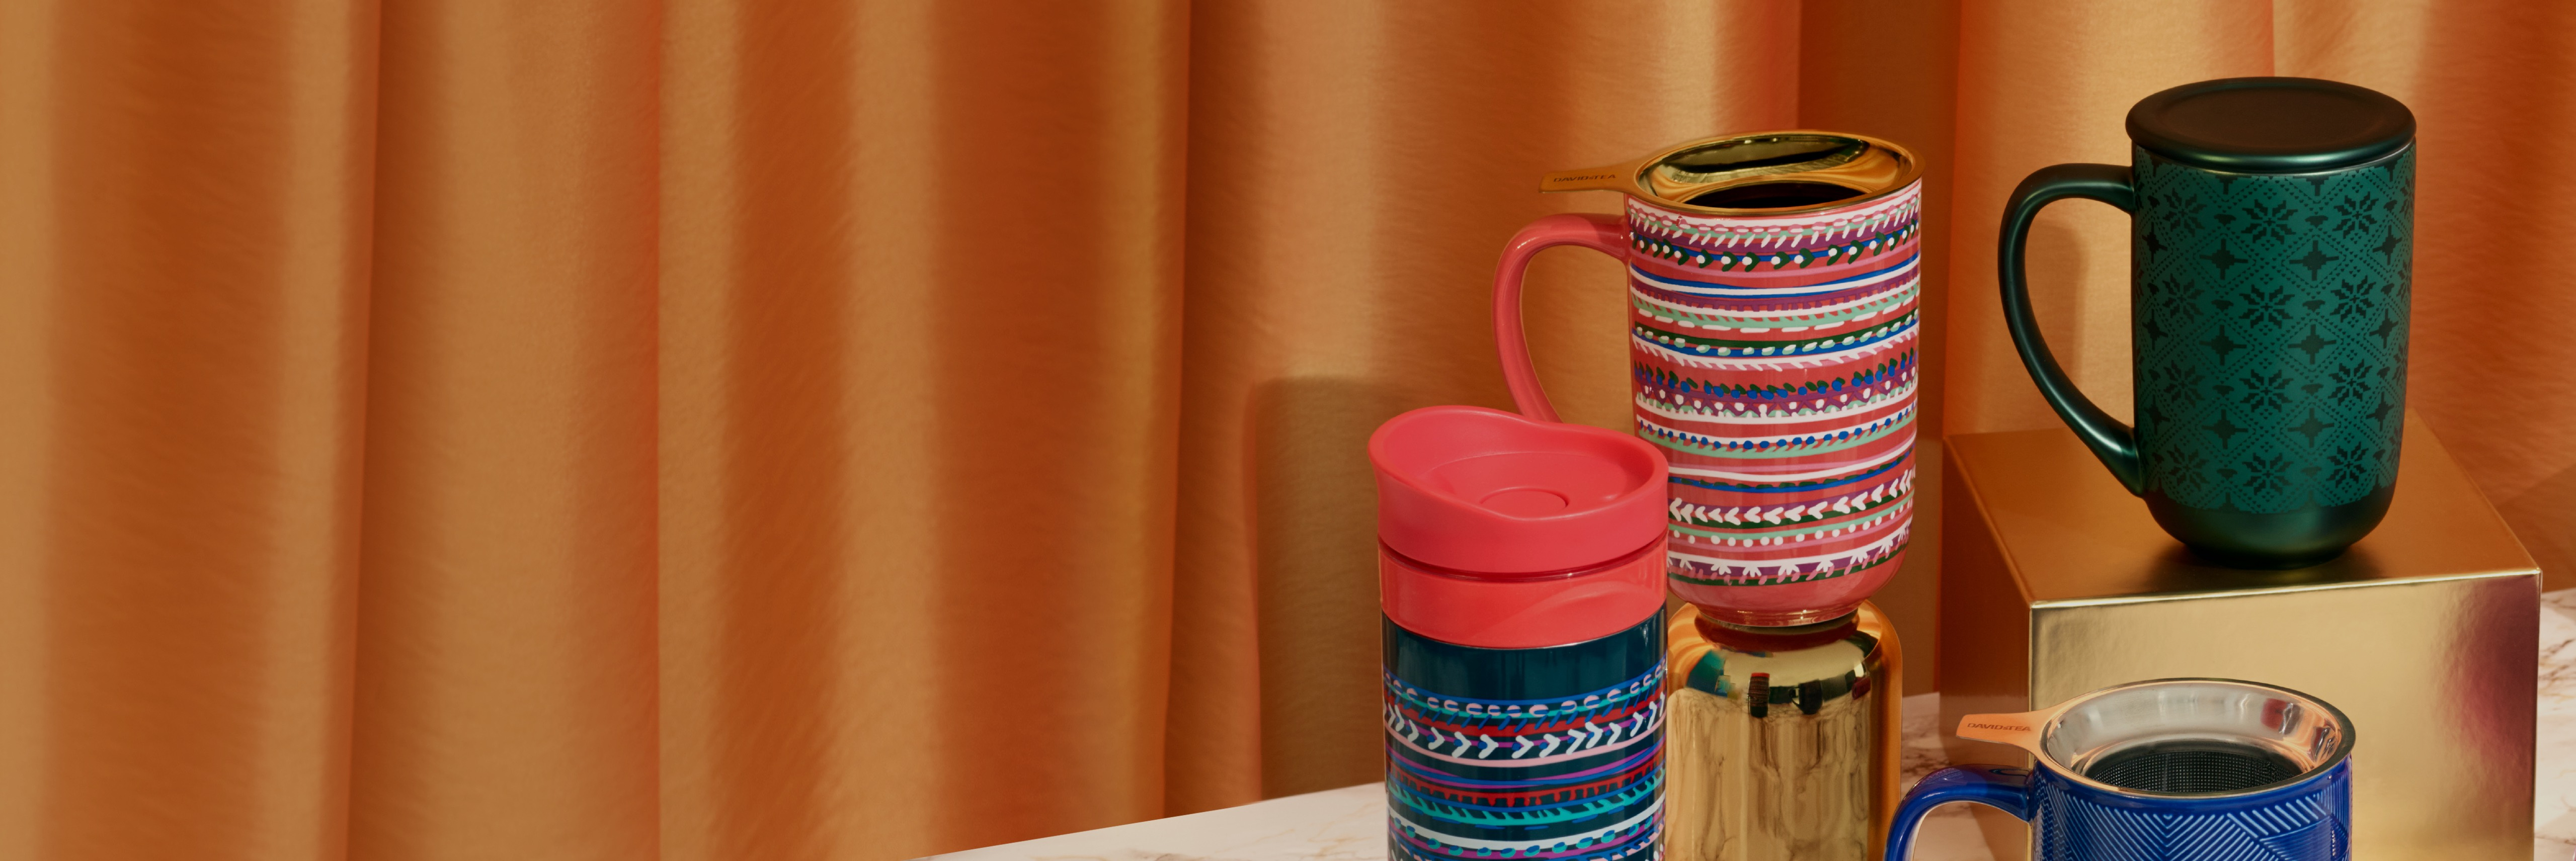 Four mugs (Nordic and travel mugs) placed on various gold boxes.